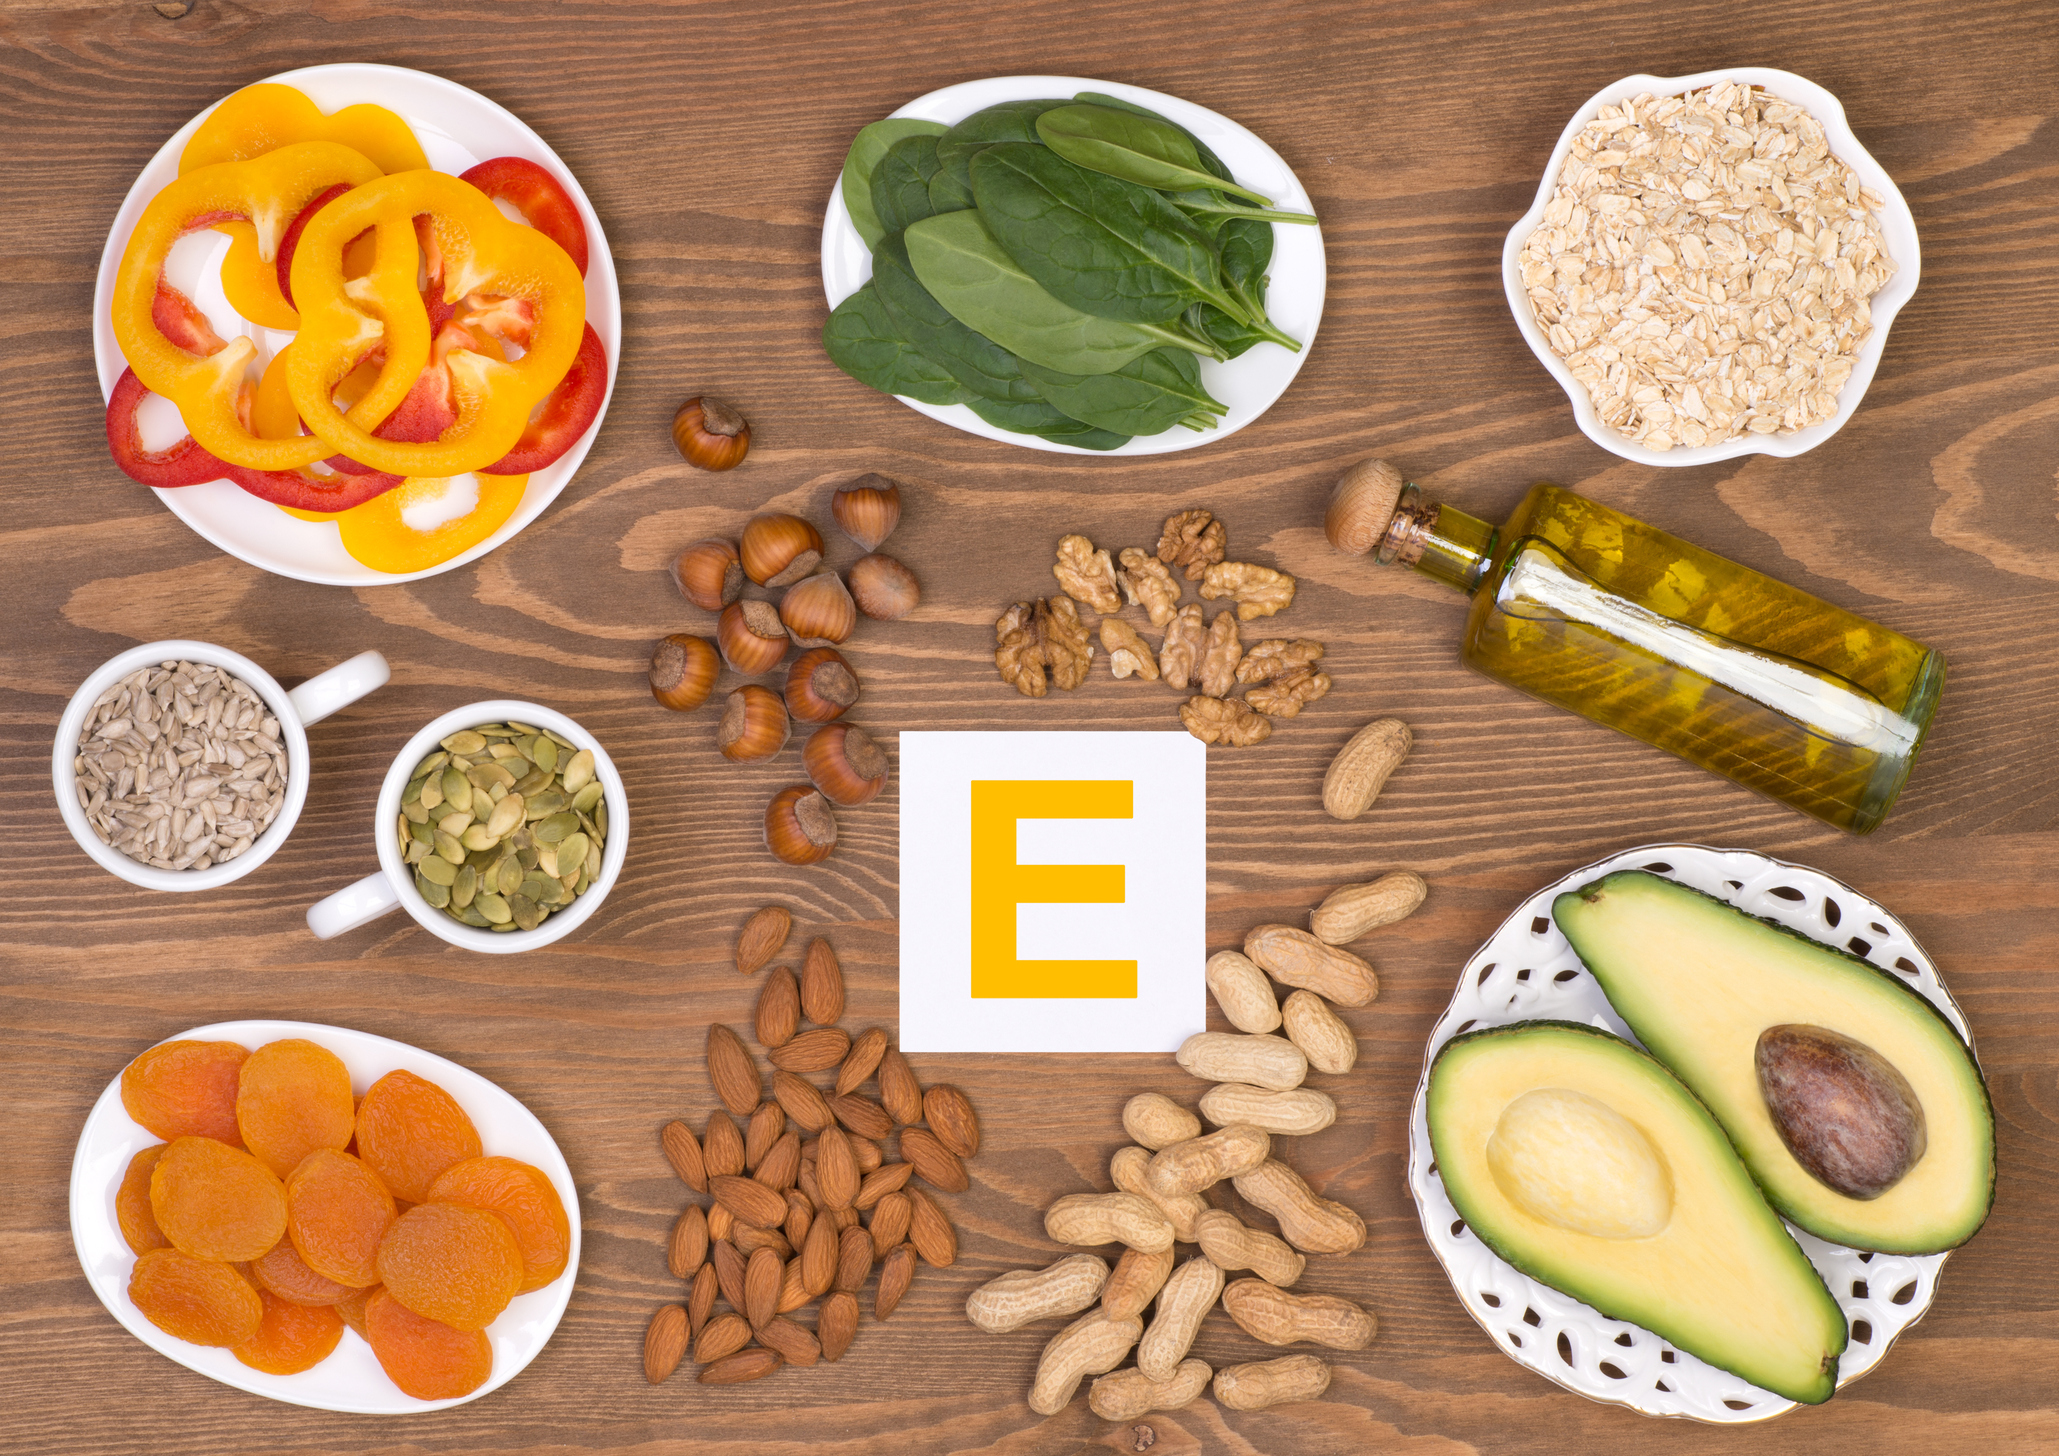 foods rich in vitamin A and E to treat Chikungunya